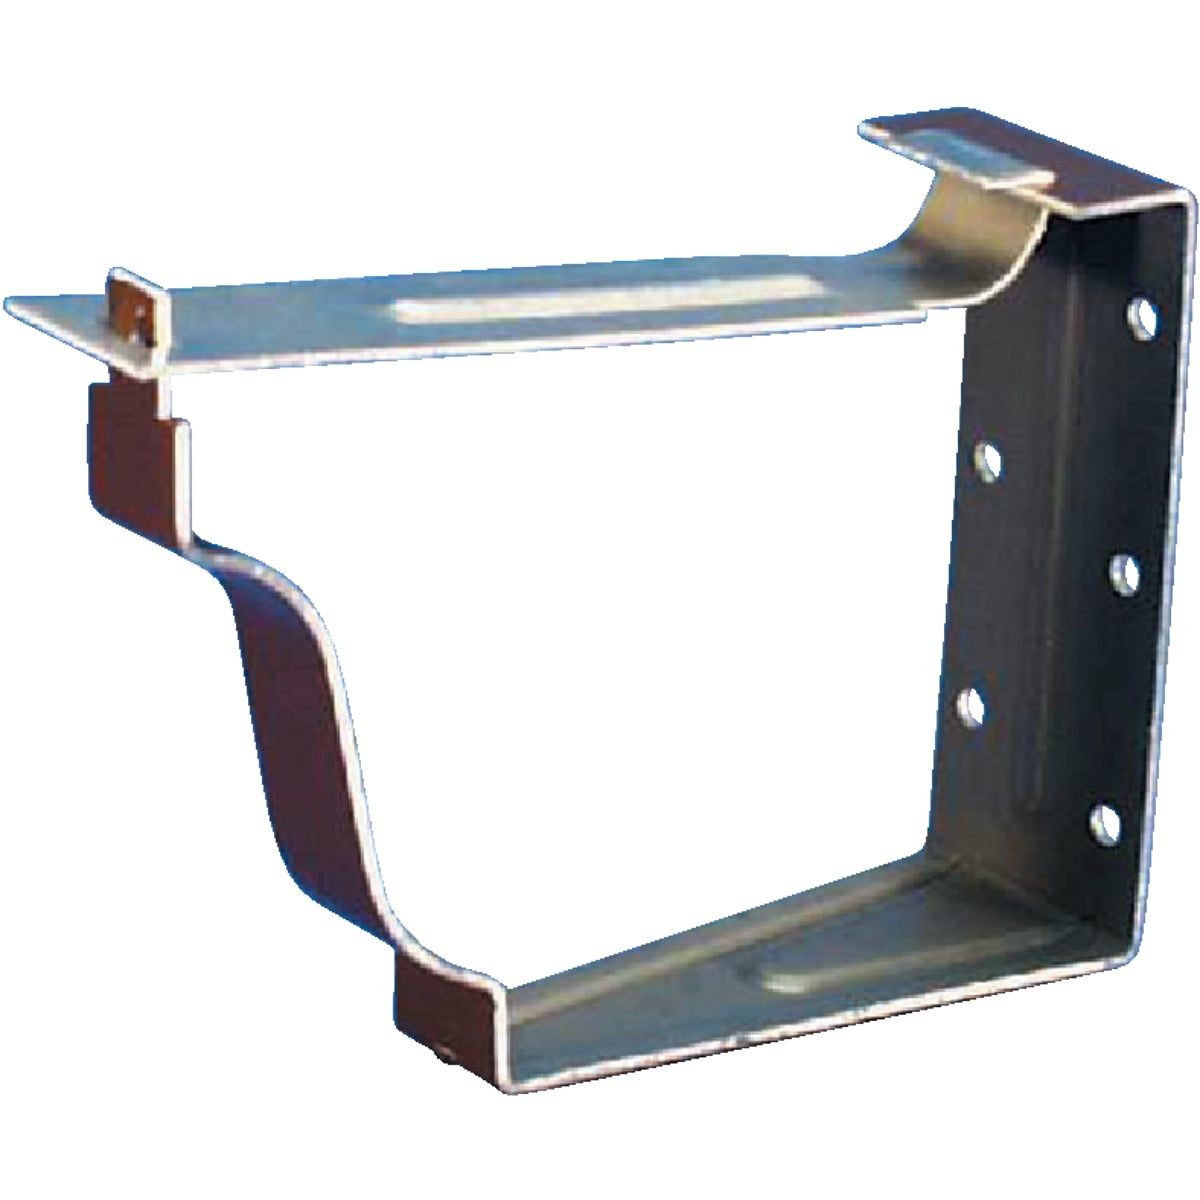 BRN SNAP LOK BRACKET - 3302219 by Amerimax Home Prod